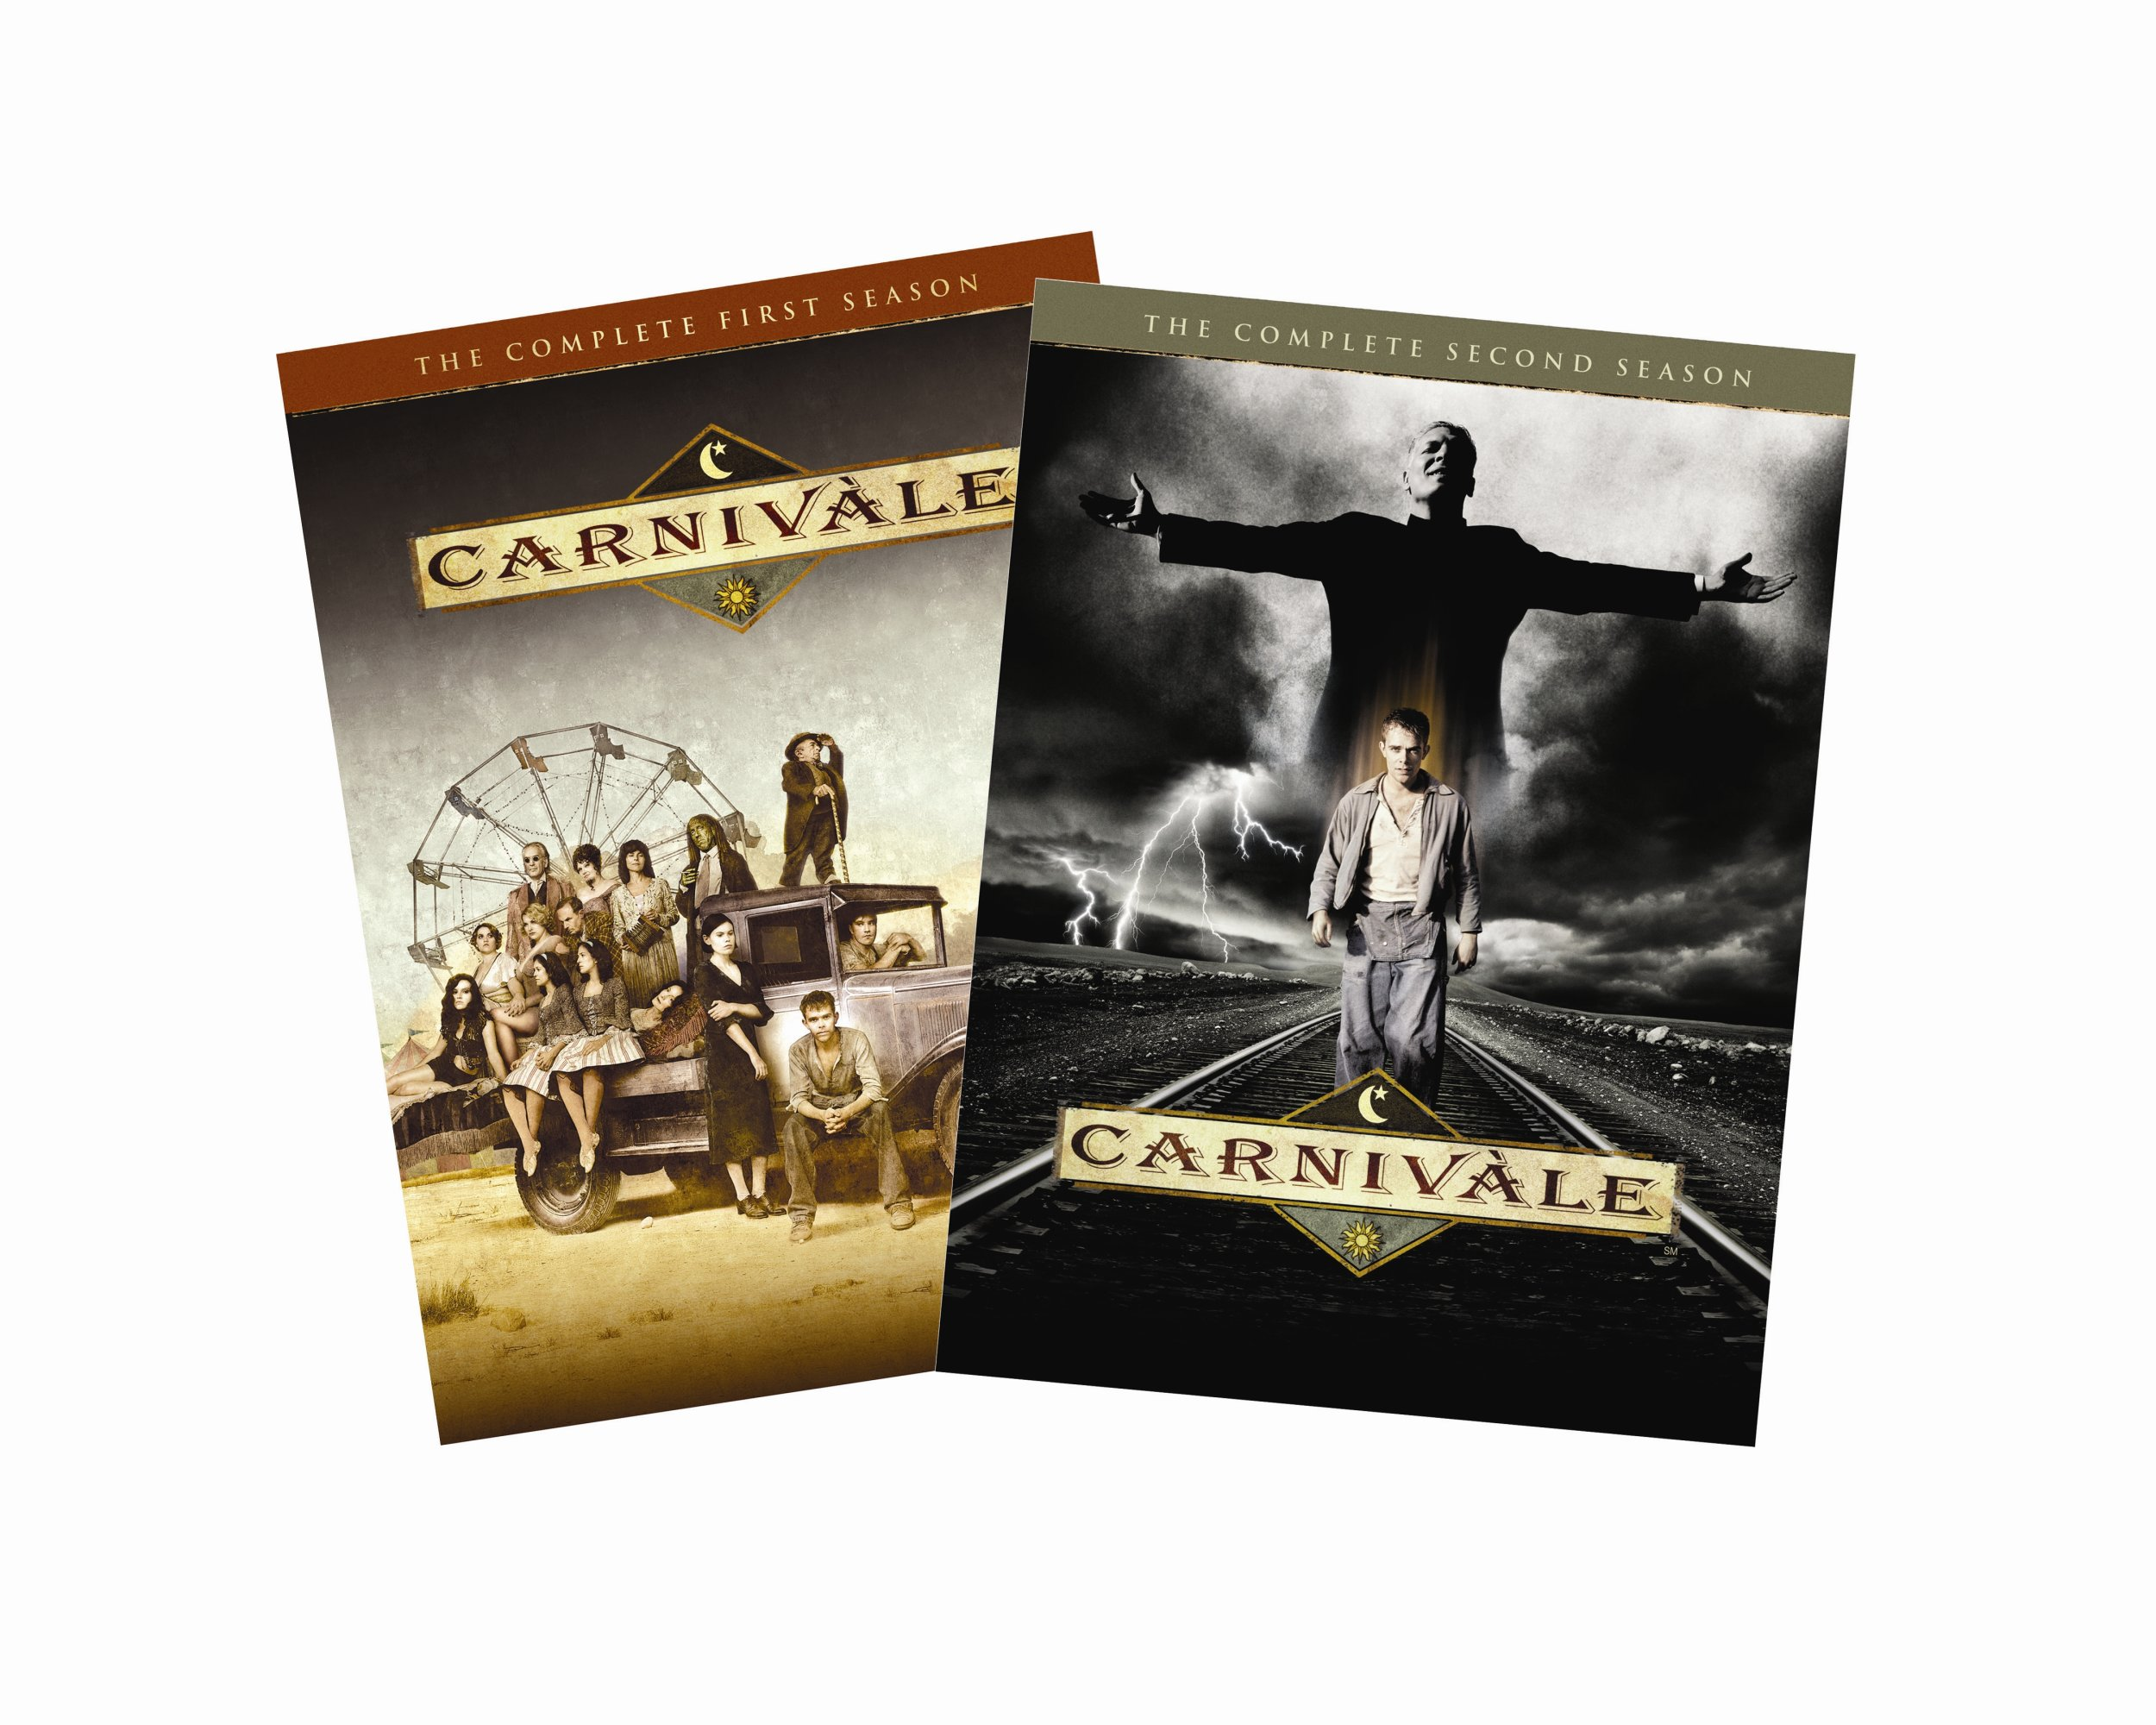 Carnivale: The Complete First Two Seasons by CARNIVALE